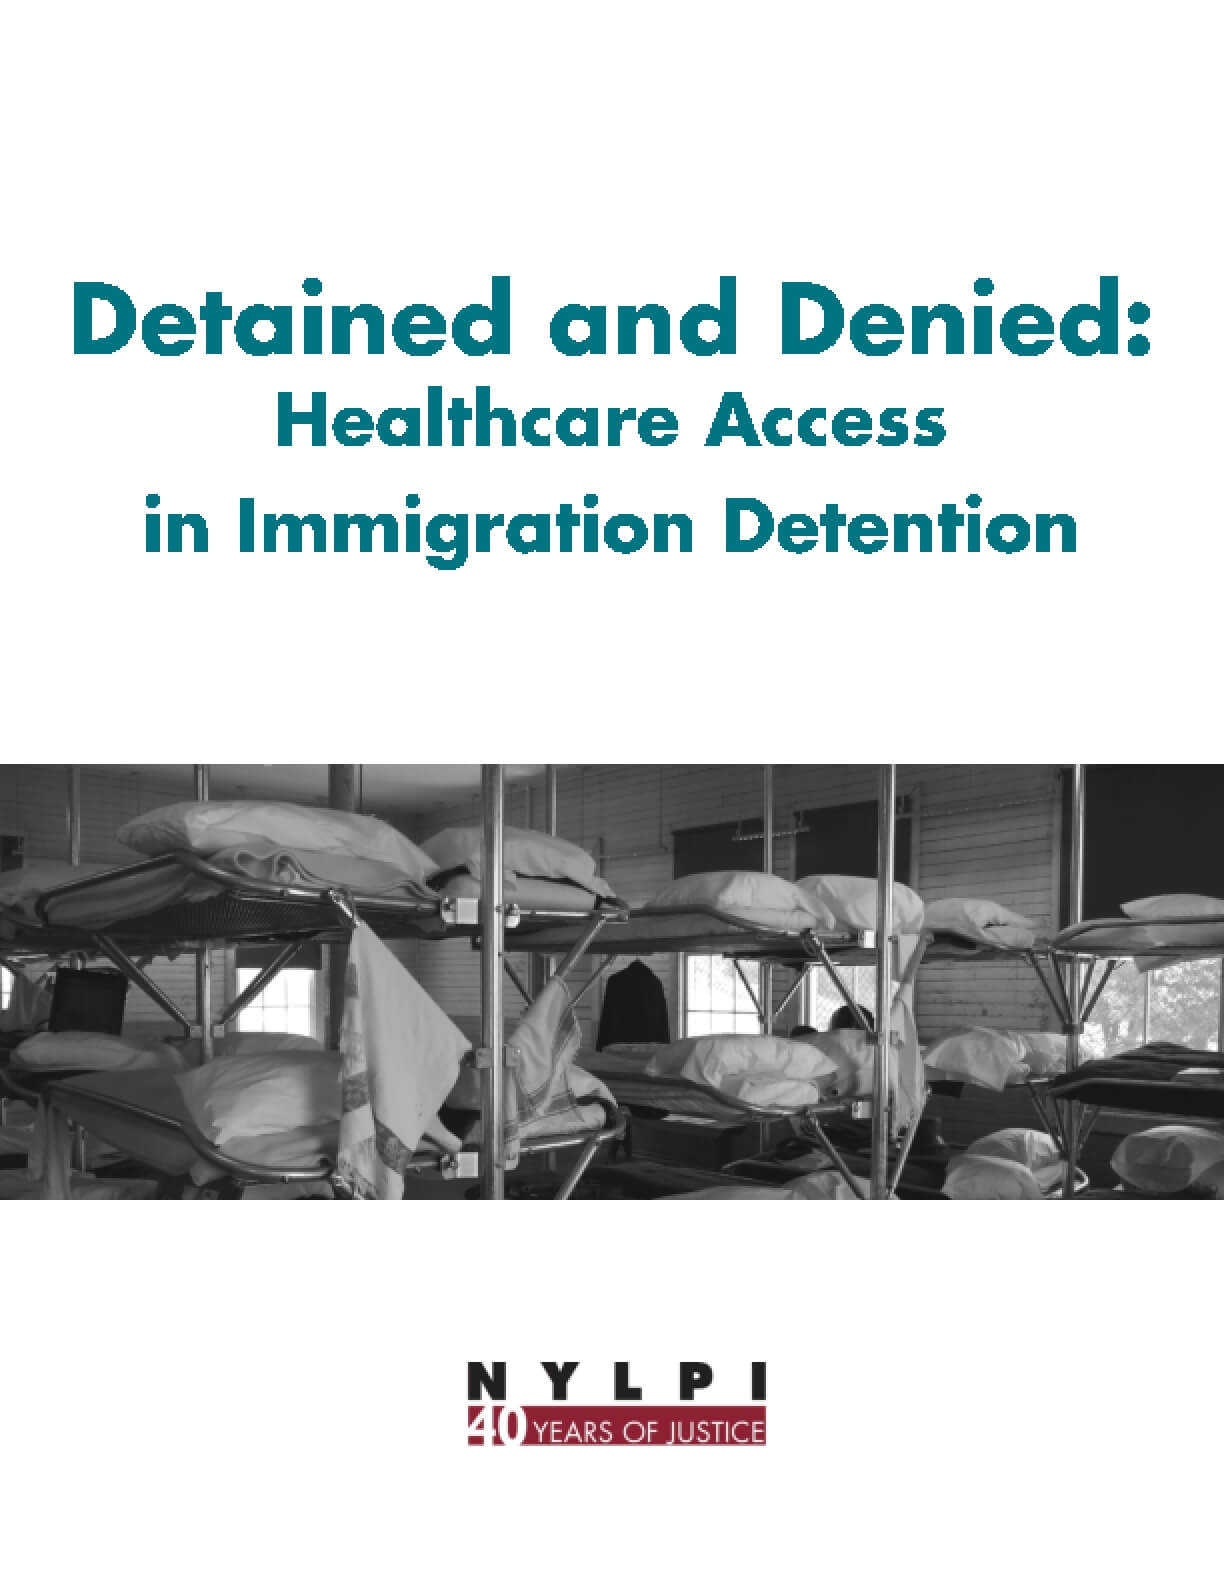 Detained and Denied: Healthcare Access in Immigration Detention